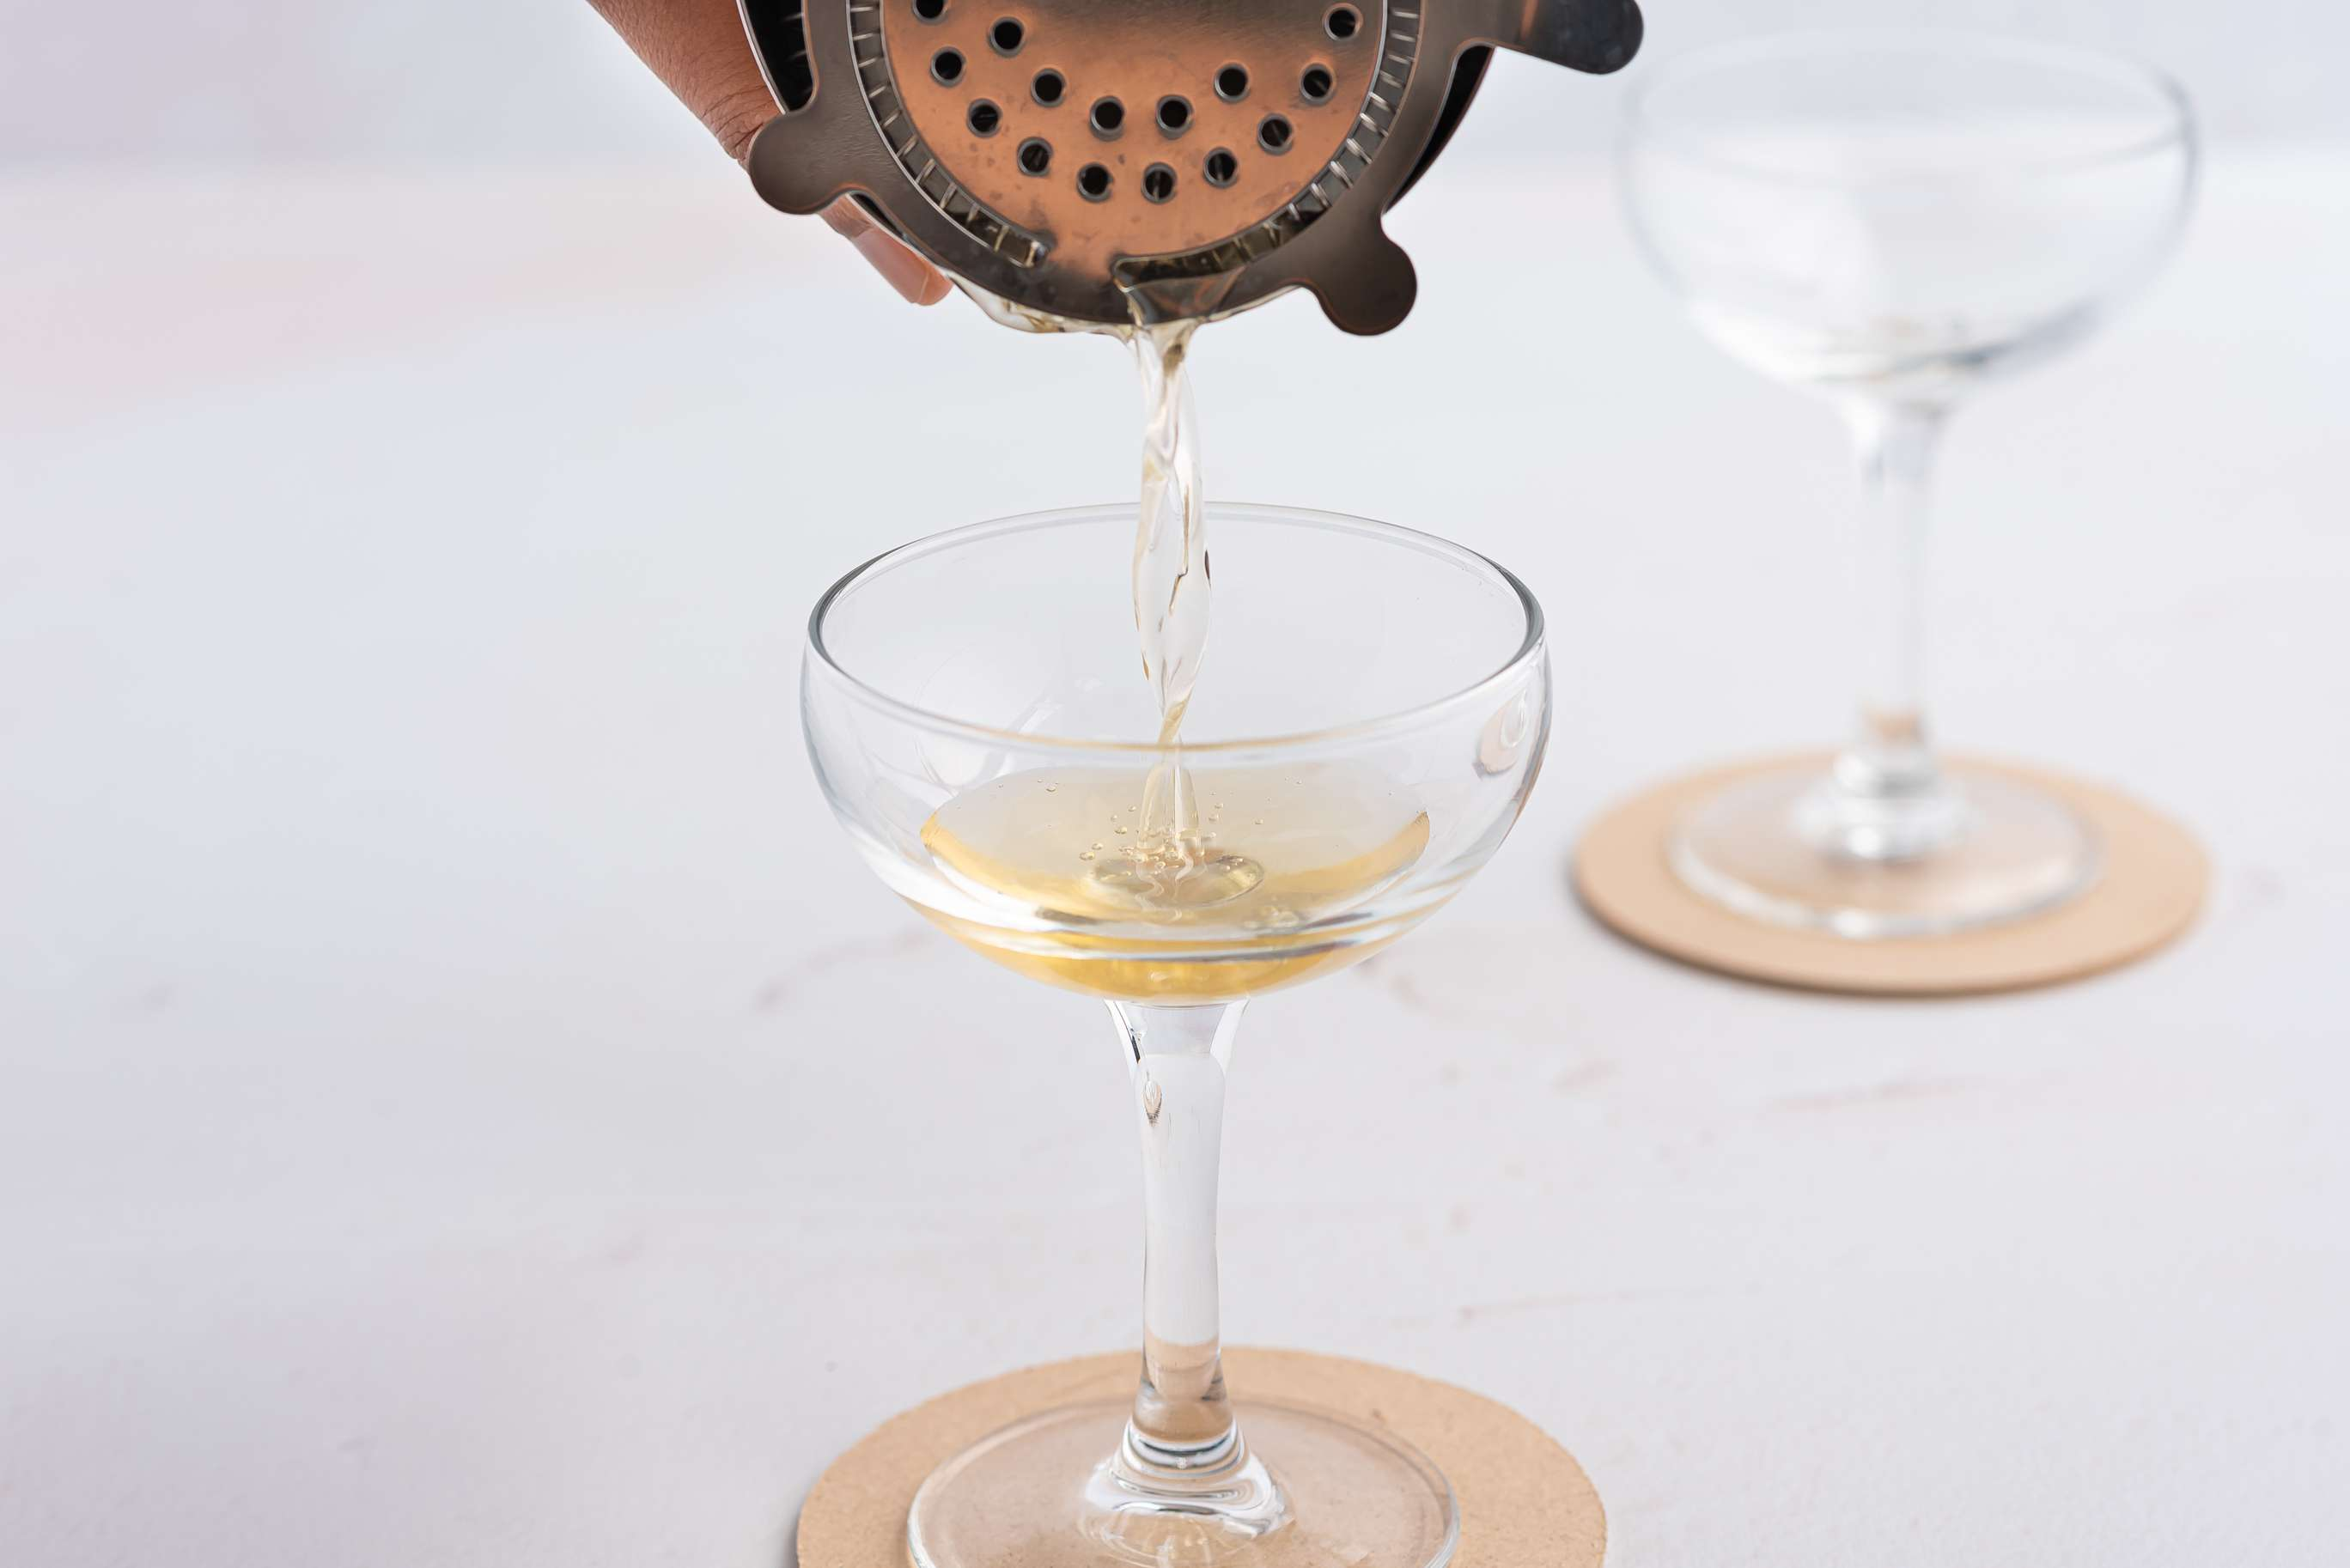 Strain the cocktail into a glass